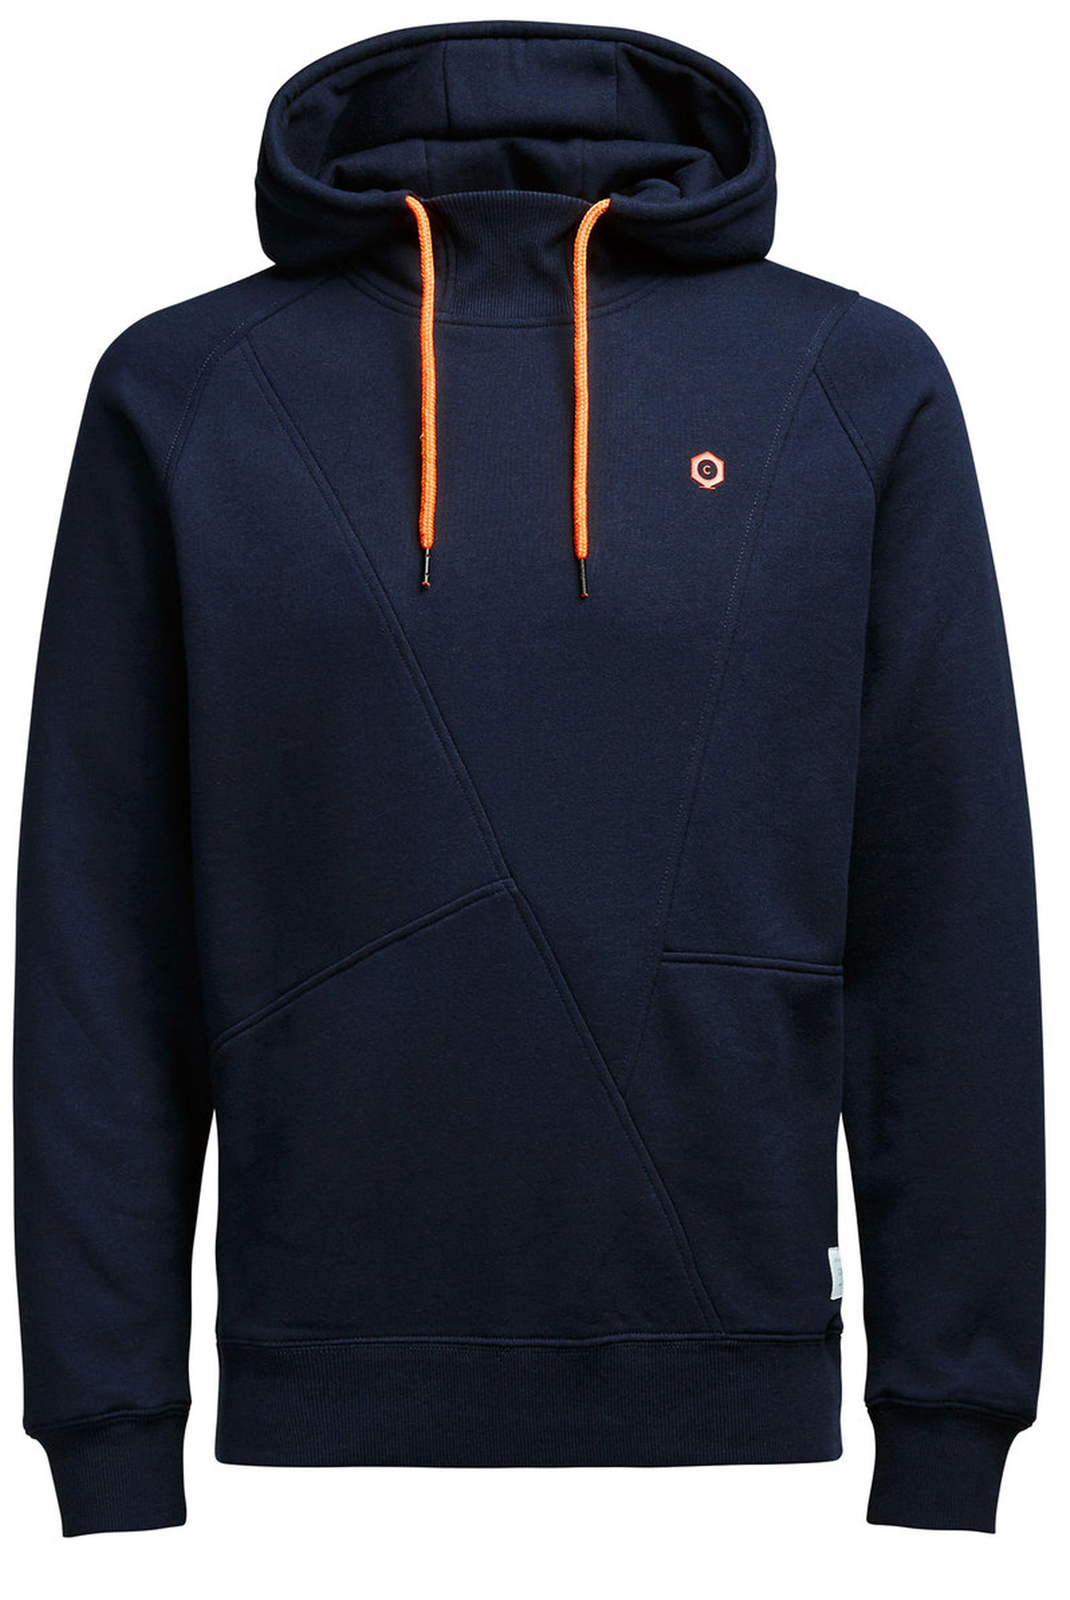 Sweatshirts  Jack & Jones PINN SWEAT HOOD NOOS NAVY BLAZER